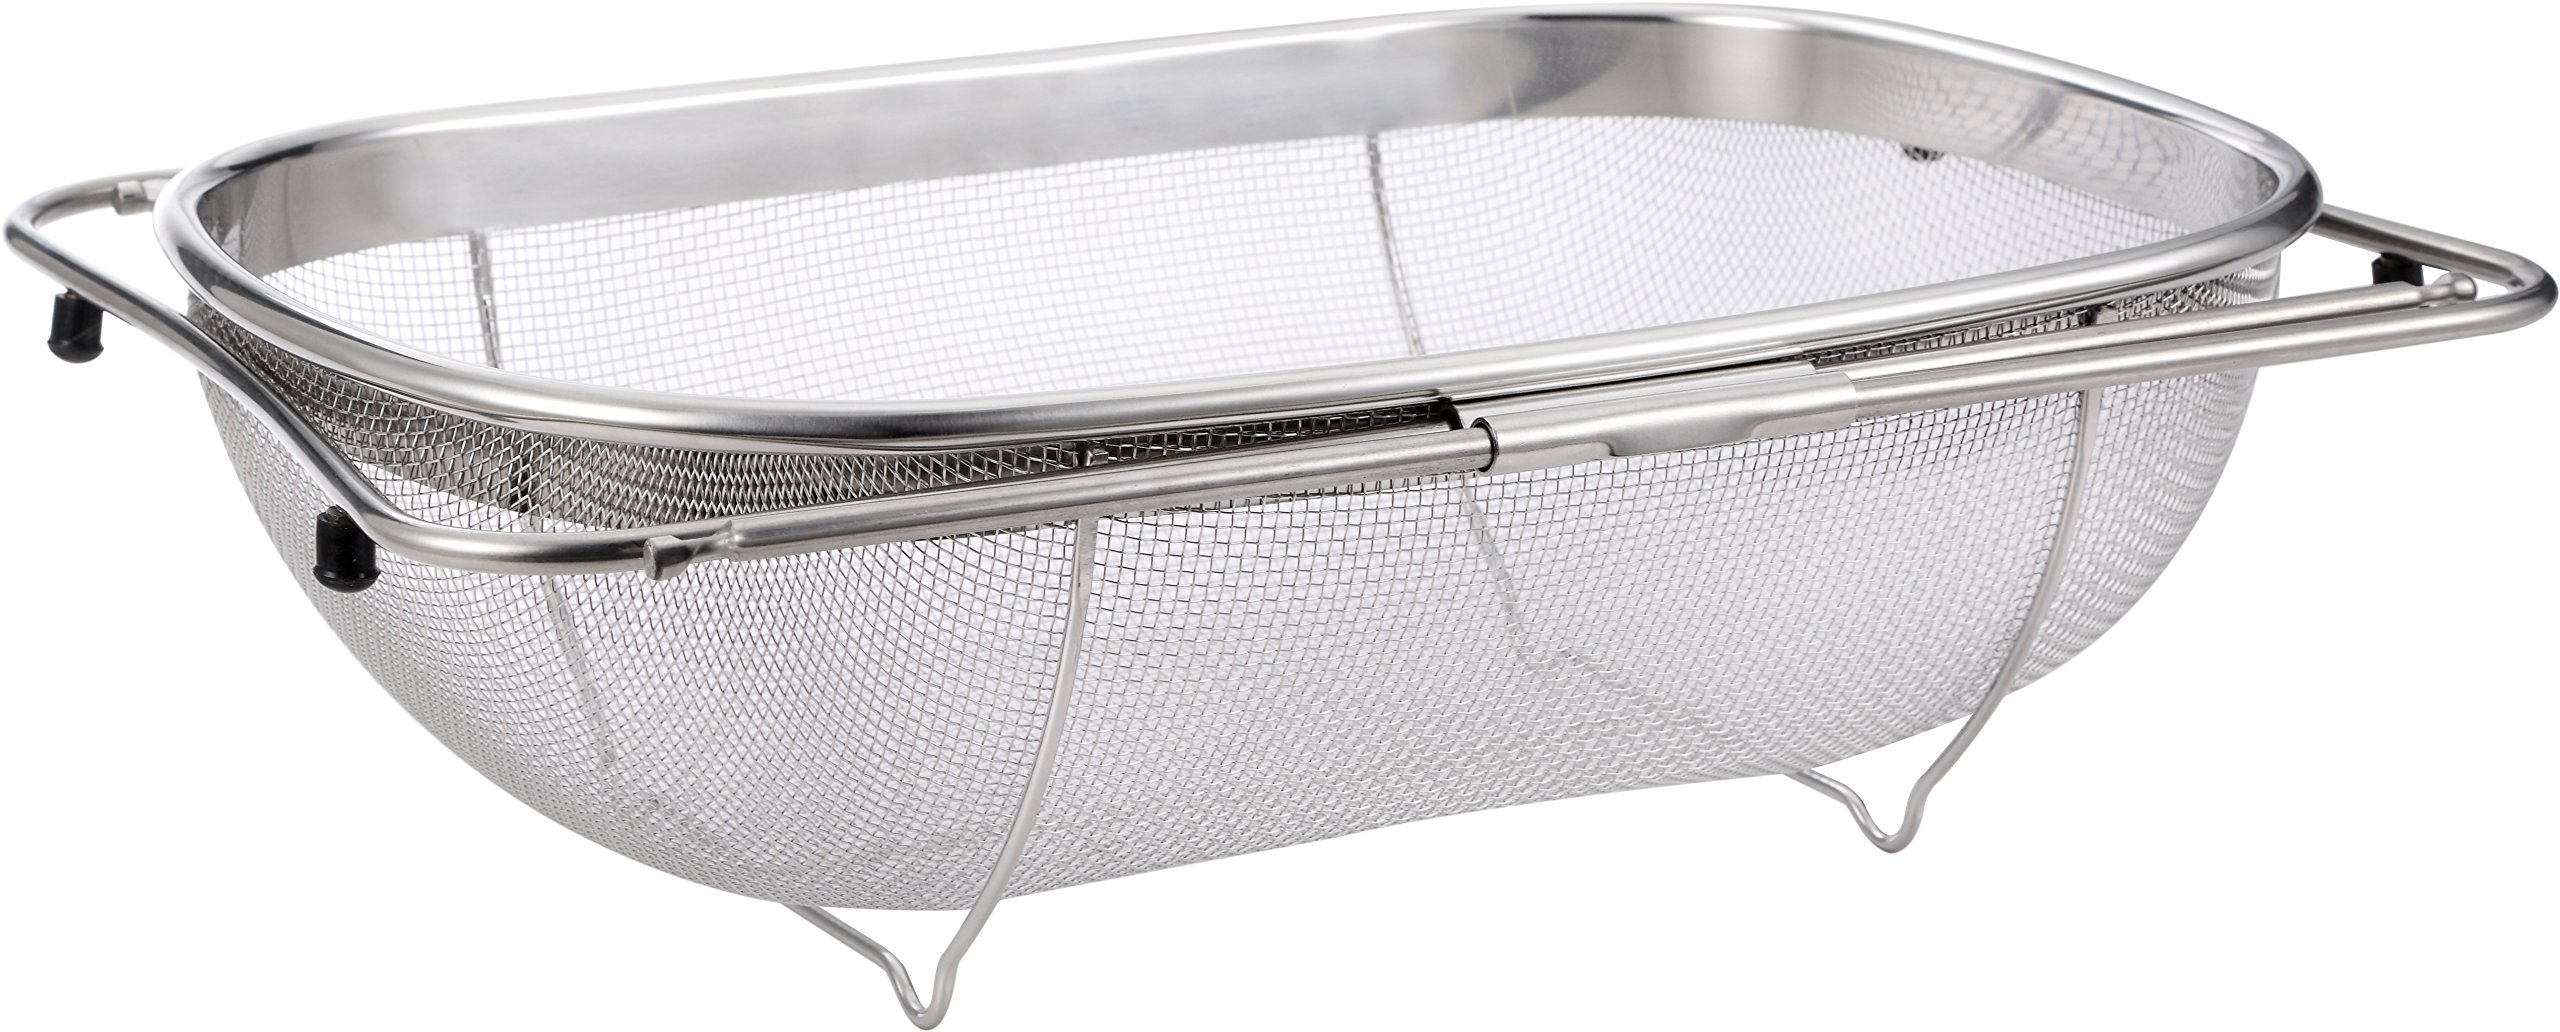 Pro Chef Kitchen Tools Stainless Steel Over the Sink Strainer - 6 Quart Fine Mesh Sieve Metal Colander Extendable Collapsible Handles Expands Over All Sinks for Washing Vegetables or Draining Pasta